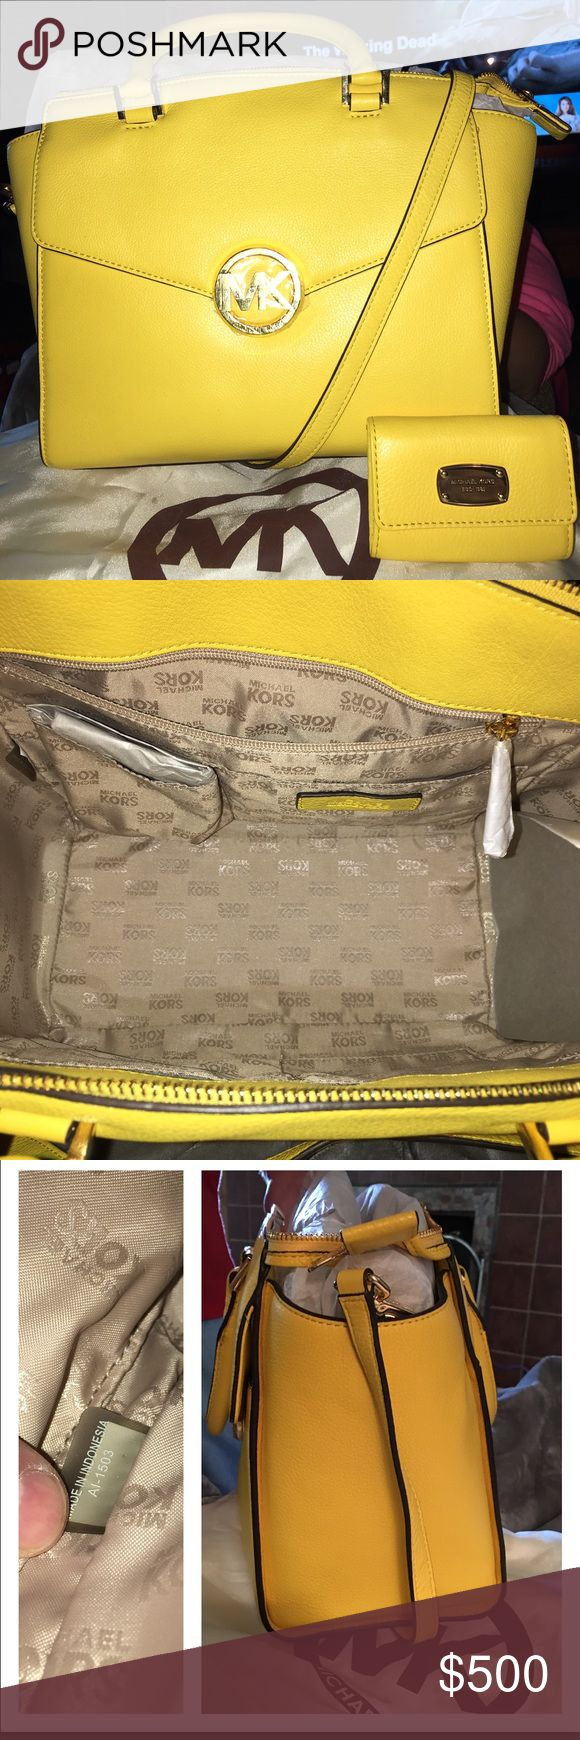 """Michael Kors Hudson LG Satchel This beautiful Citrus (bright yellow) bag  just in time for summer! It's very roomy with 4 slip and 1 zip pocket inside, pocket outside with magnetic closure, gold hardware, adjustable strap to wear it on the side, 5"""" drop on double handles and the measurements are 13 X 10.5 X 6 MSRP $439 wallet has a zip, 2 slot pockets, and 1 open pocket with leather strap key ring MSRP $116.  It comes with a dust bag VERY FIRM MICHAEL Michael Kors Bags Satchels"""